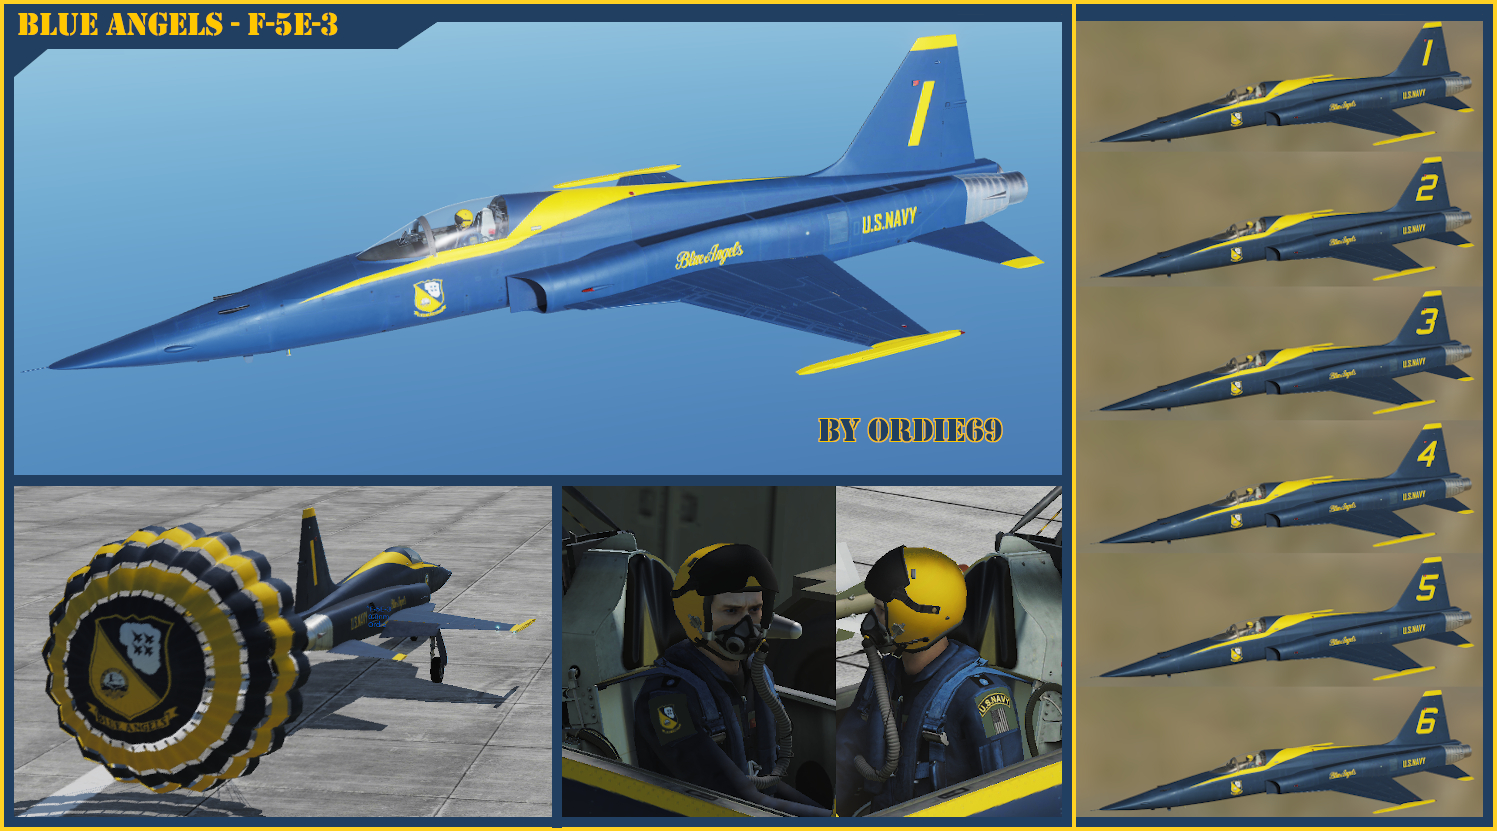 Blue Angels Team for F-5E-3